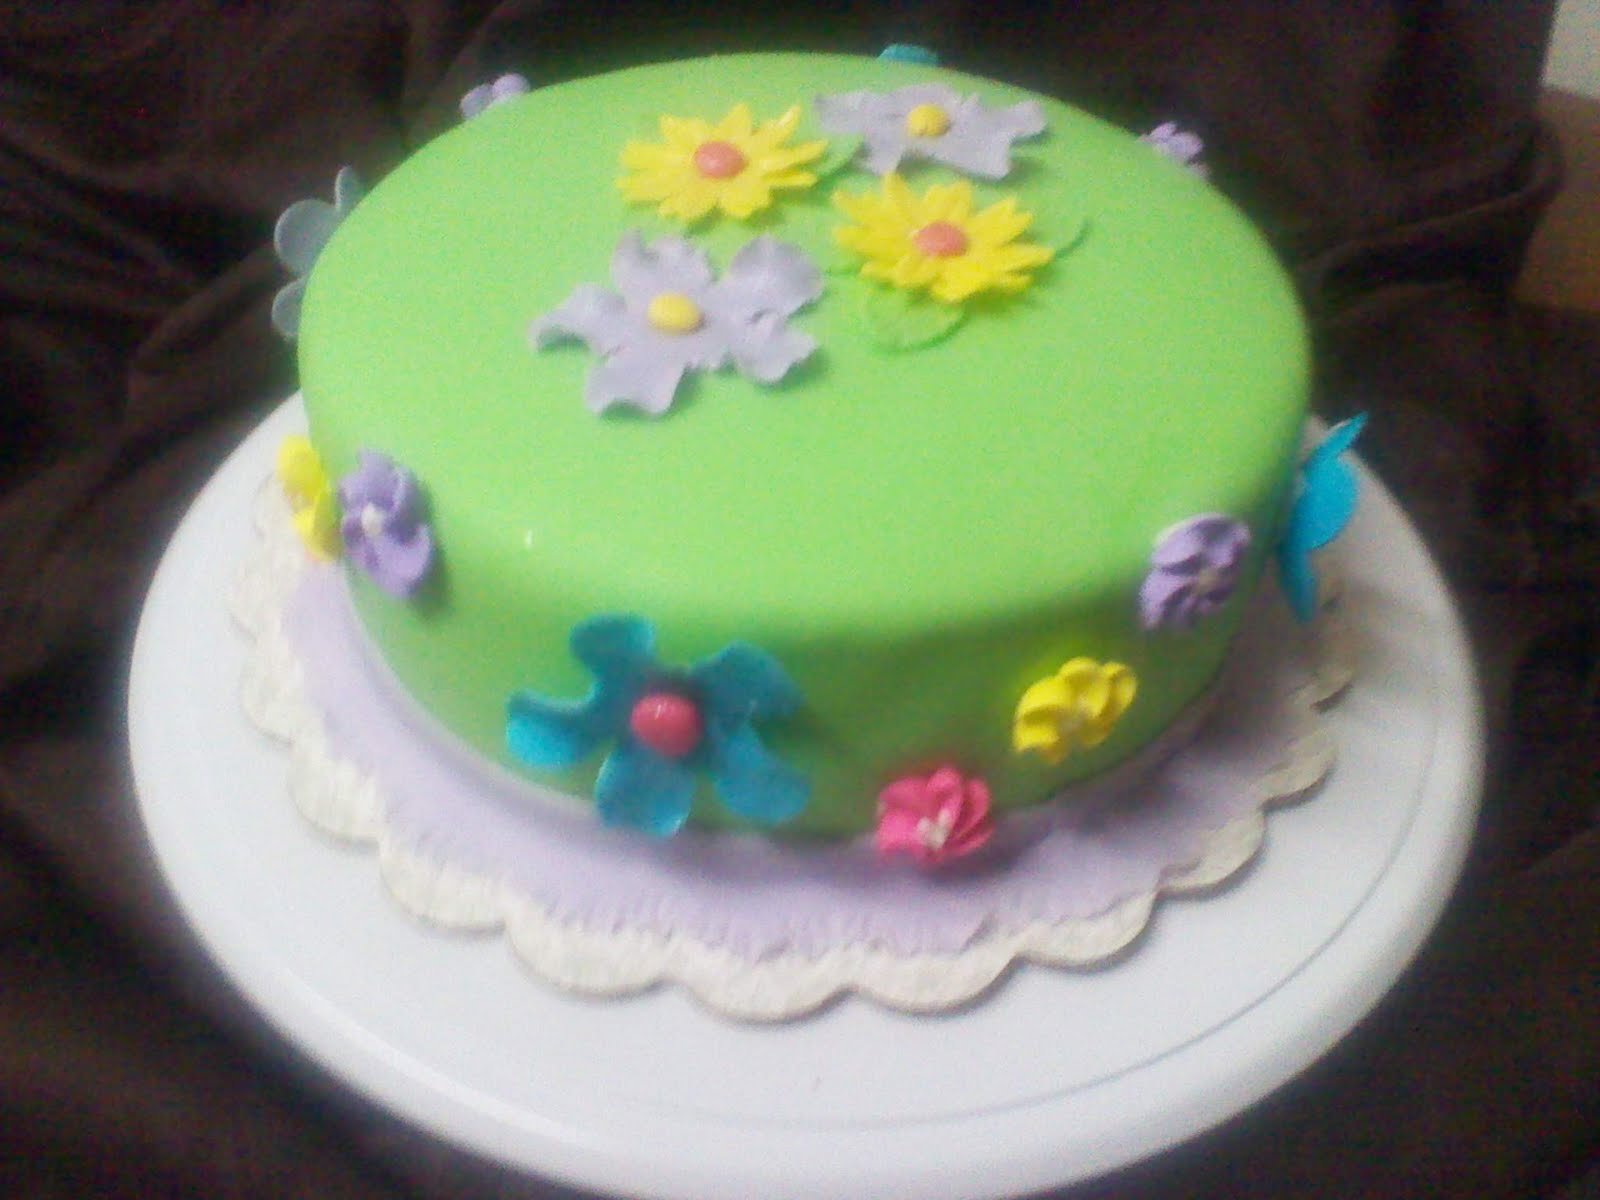 Flower garden cake ideas diy ujang ma